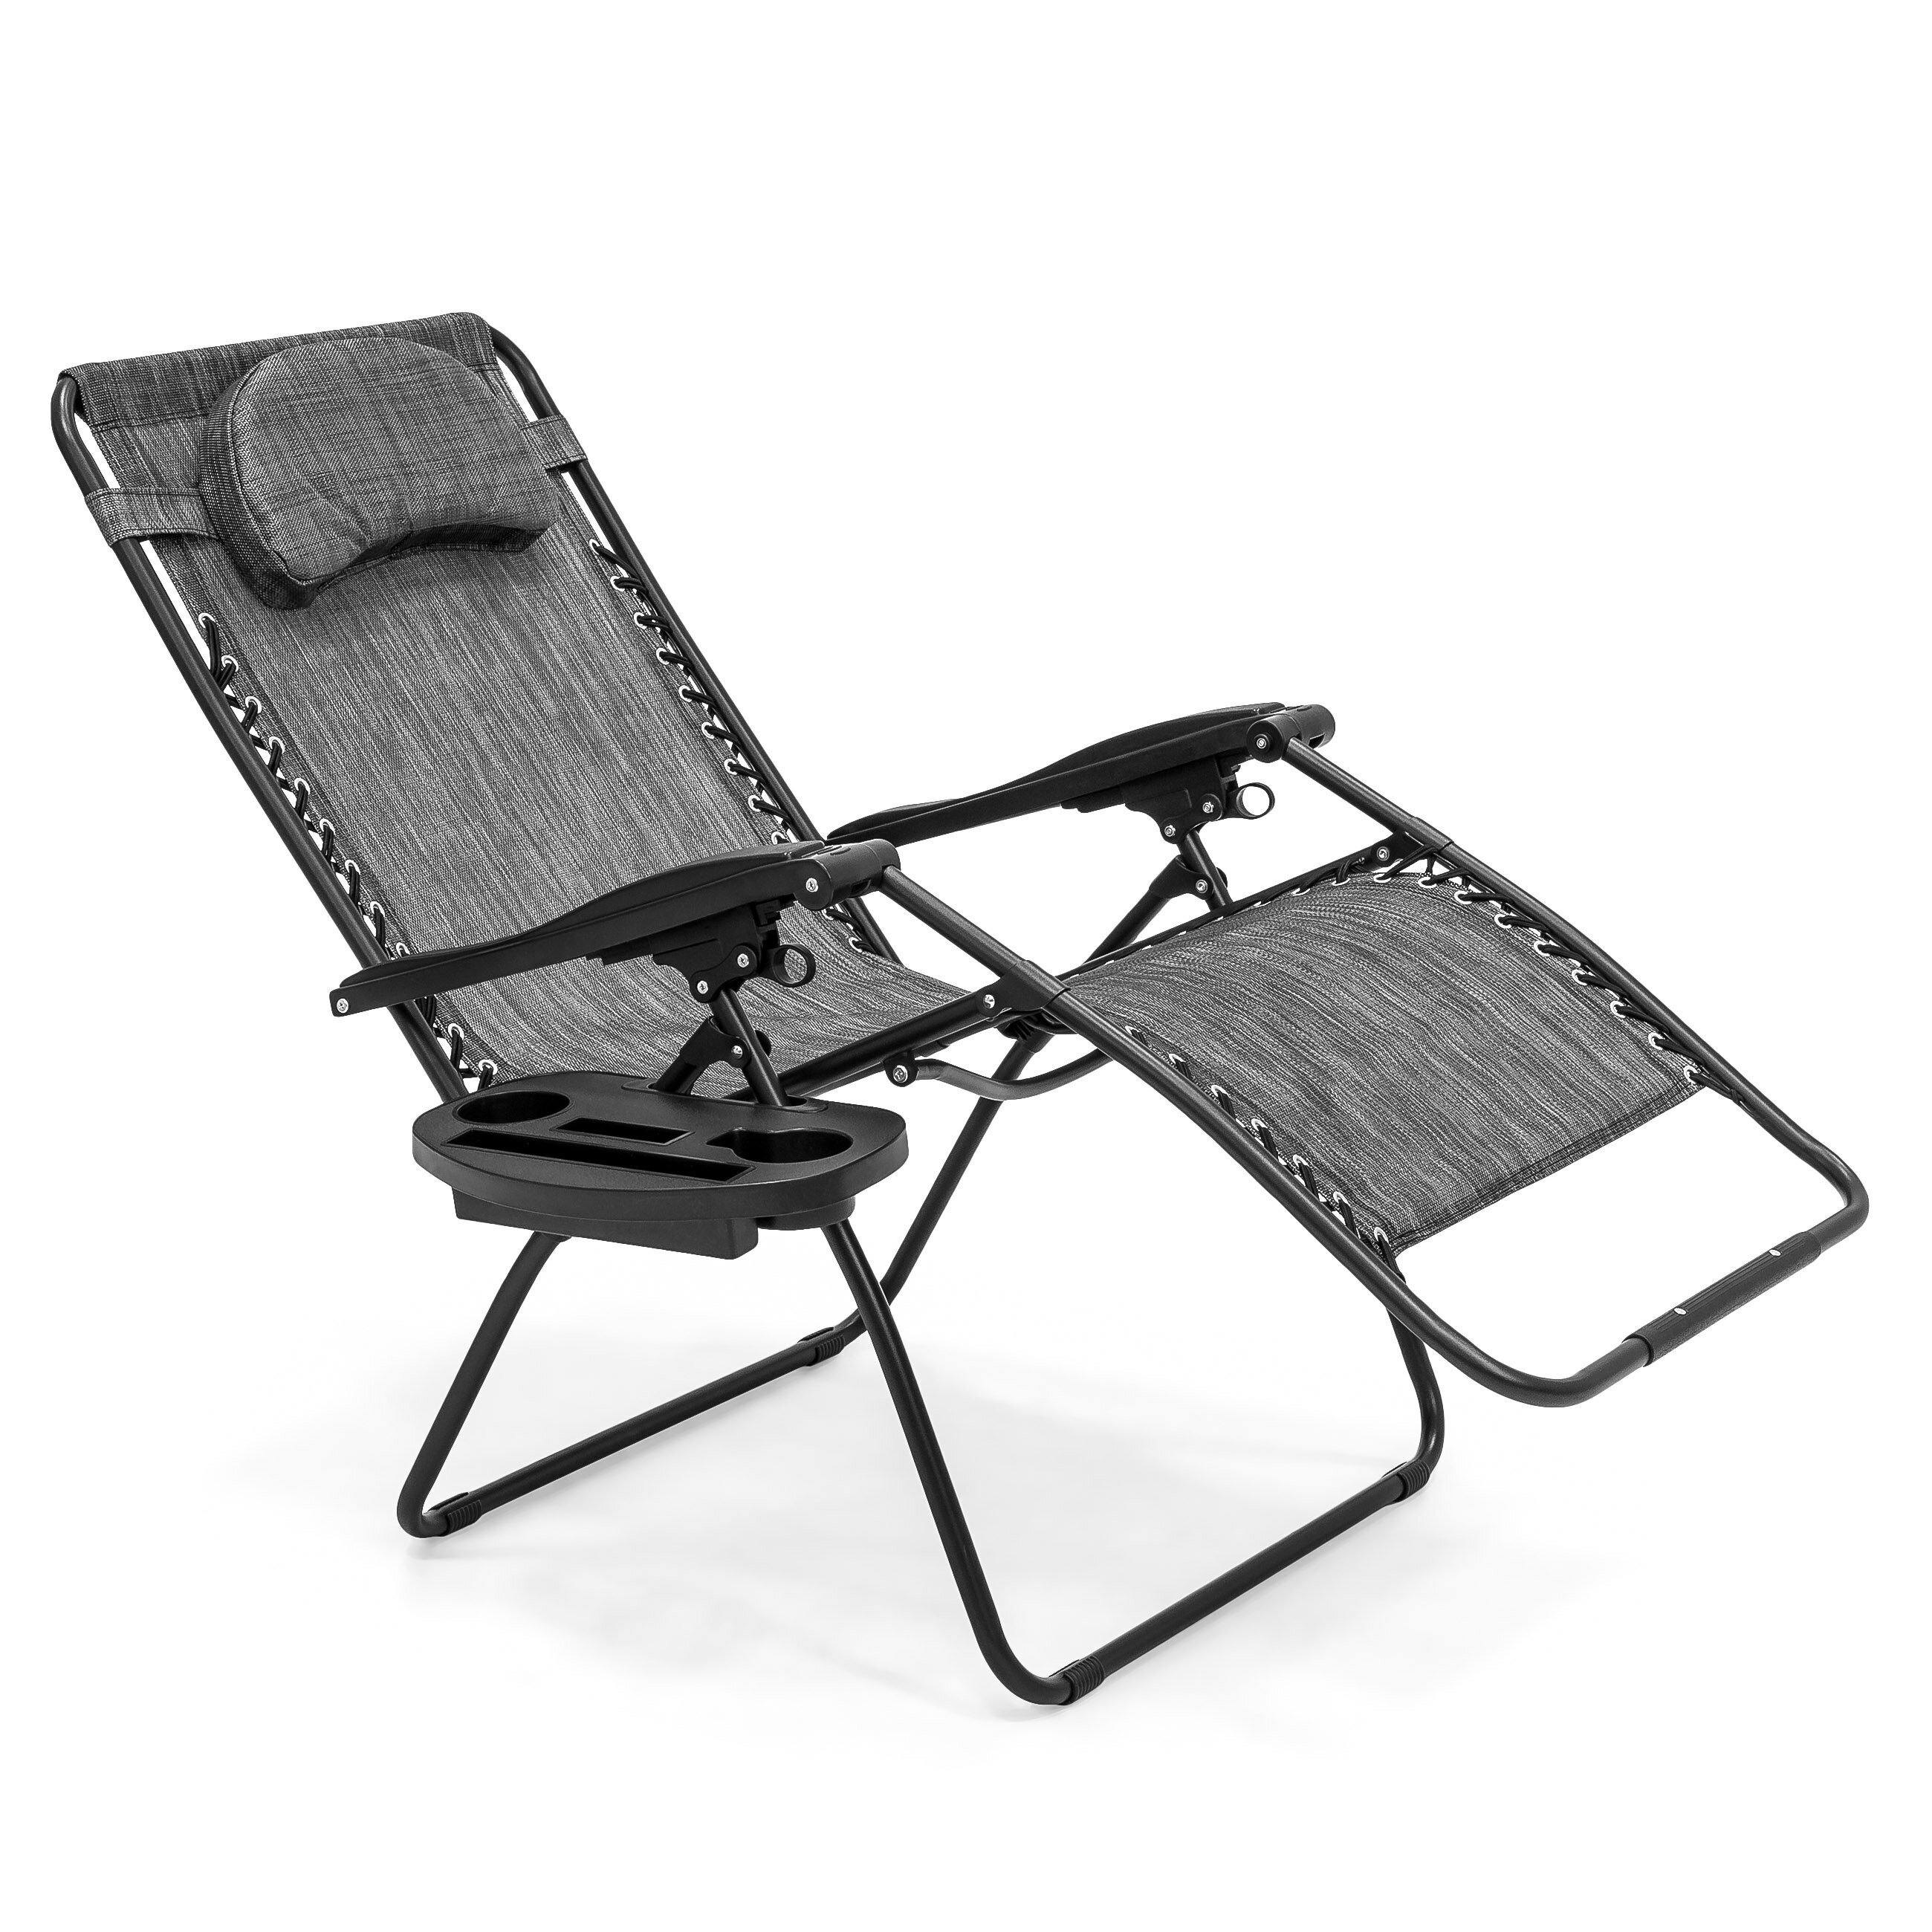 Best Choice Products Oversized Zero Gravity Outdoor Reclining Lounge Patio  Chair W/ Cup Holder